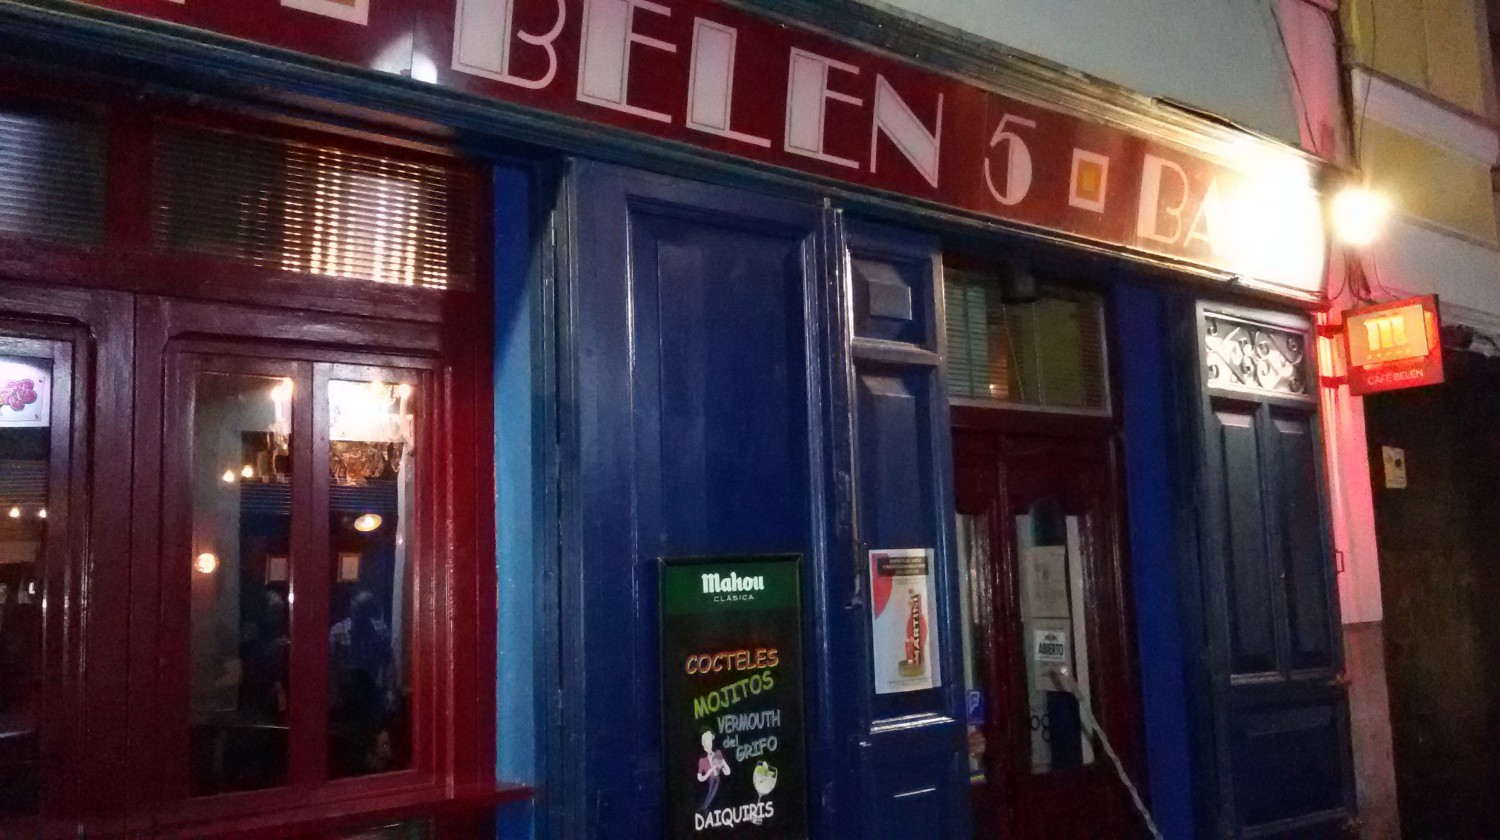 cafe belen madrid en chueca calle belen 5 28004 madrid